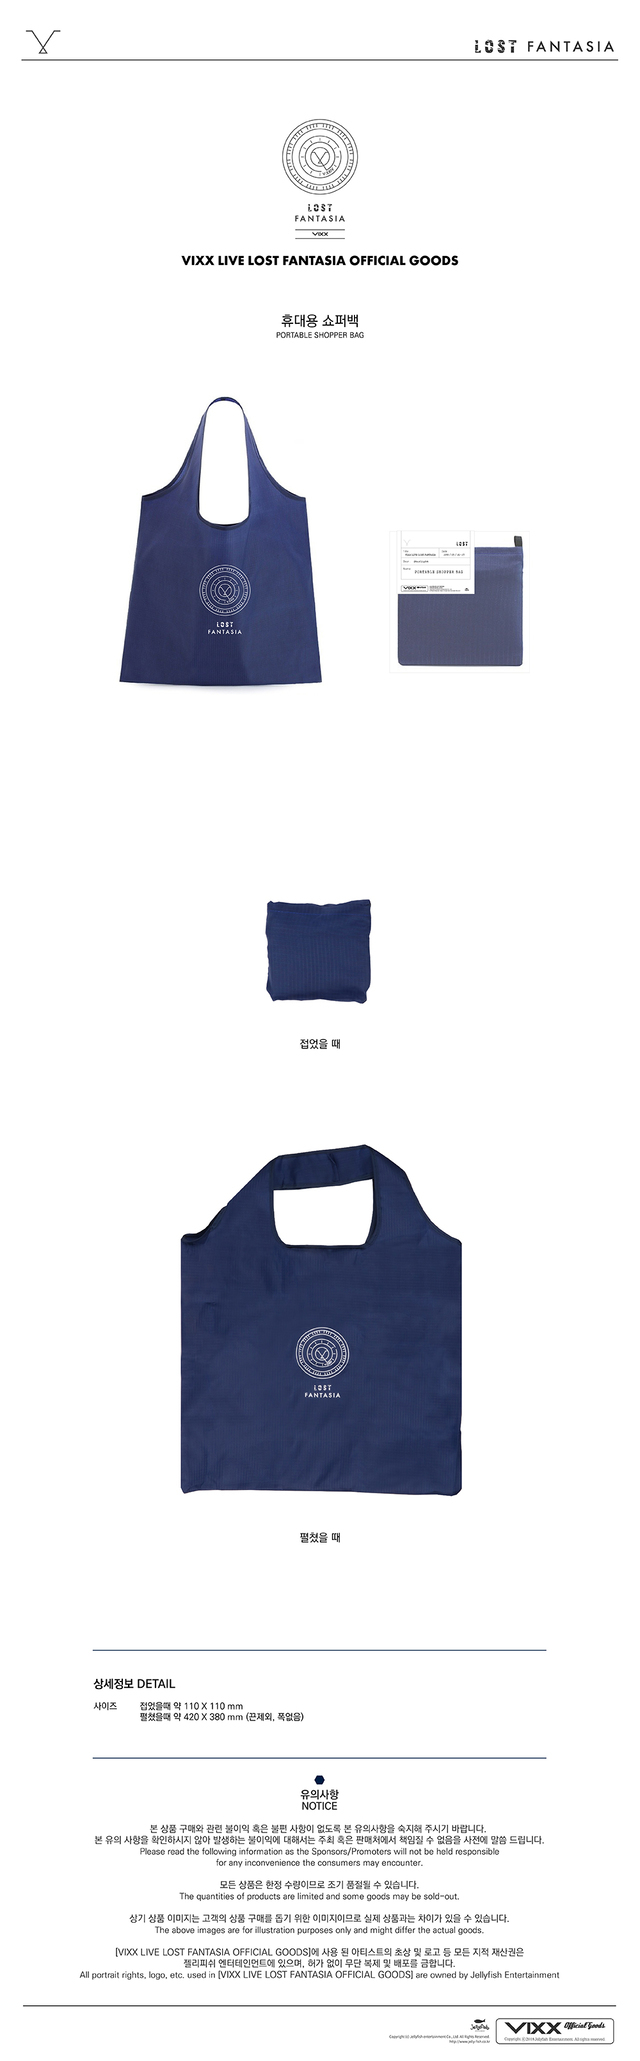 vixx_shopperbag.jpg